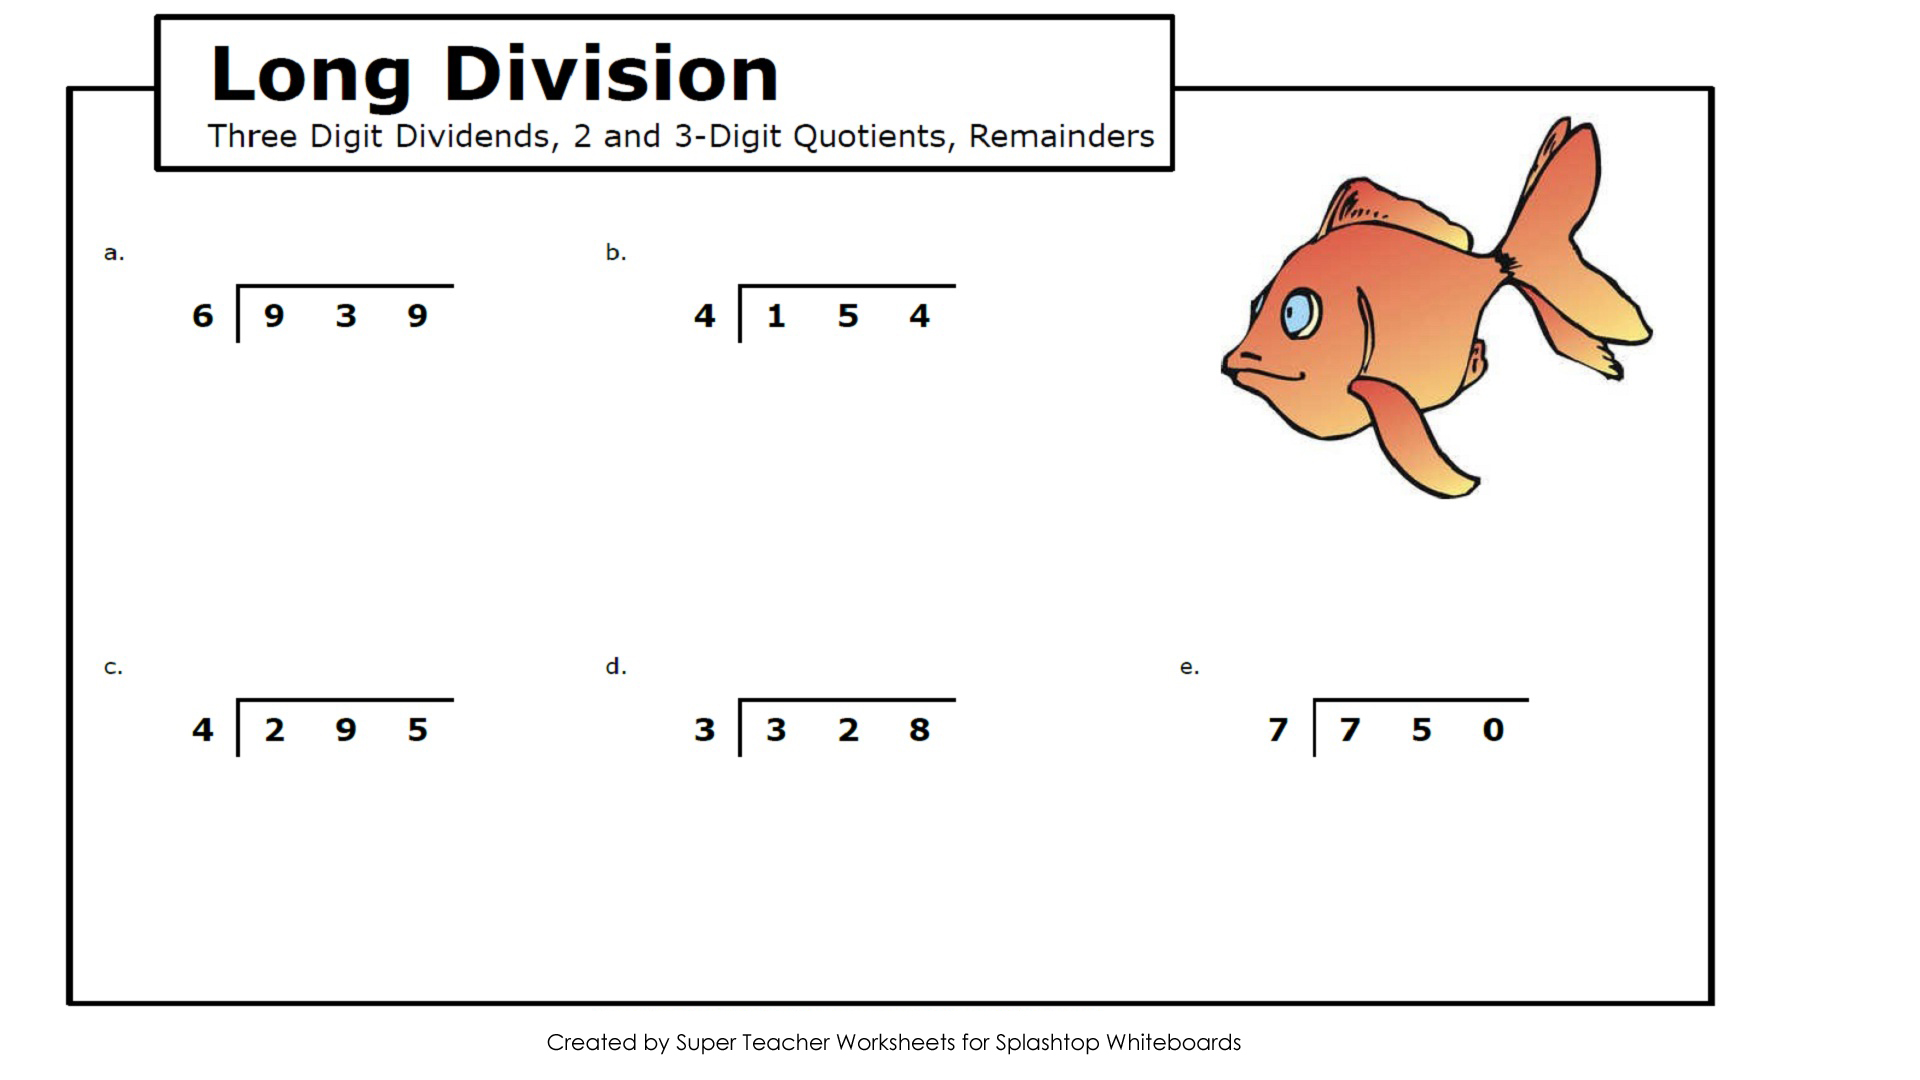 Printables Printable Long Division Worksheets copy of math long division lessons tes teach worksheets printable for teachers done splashtop whiteboard background graphics